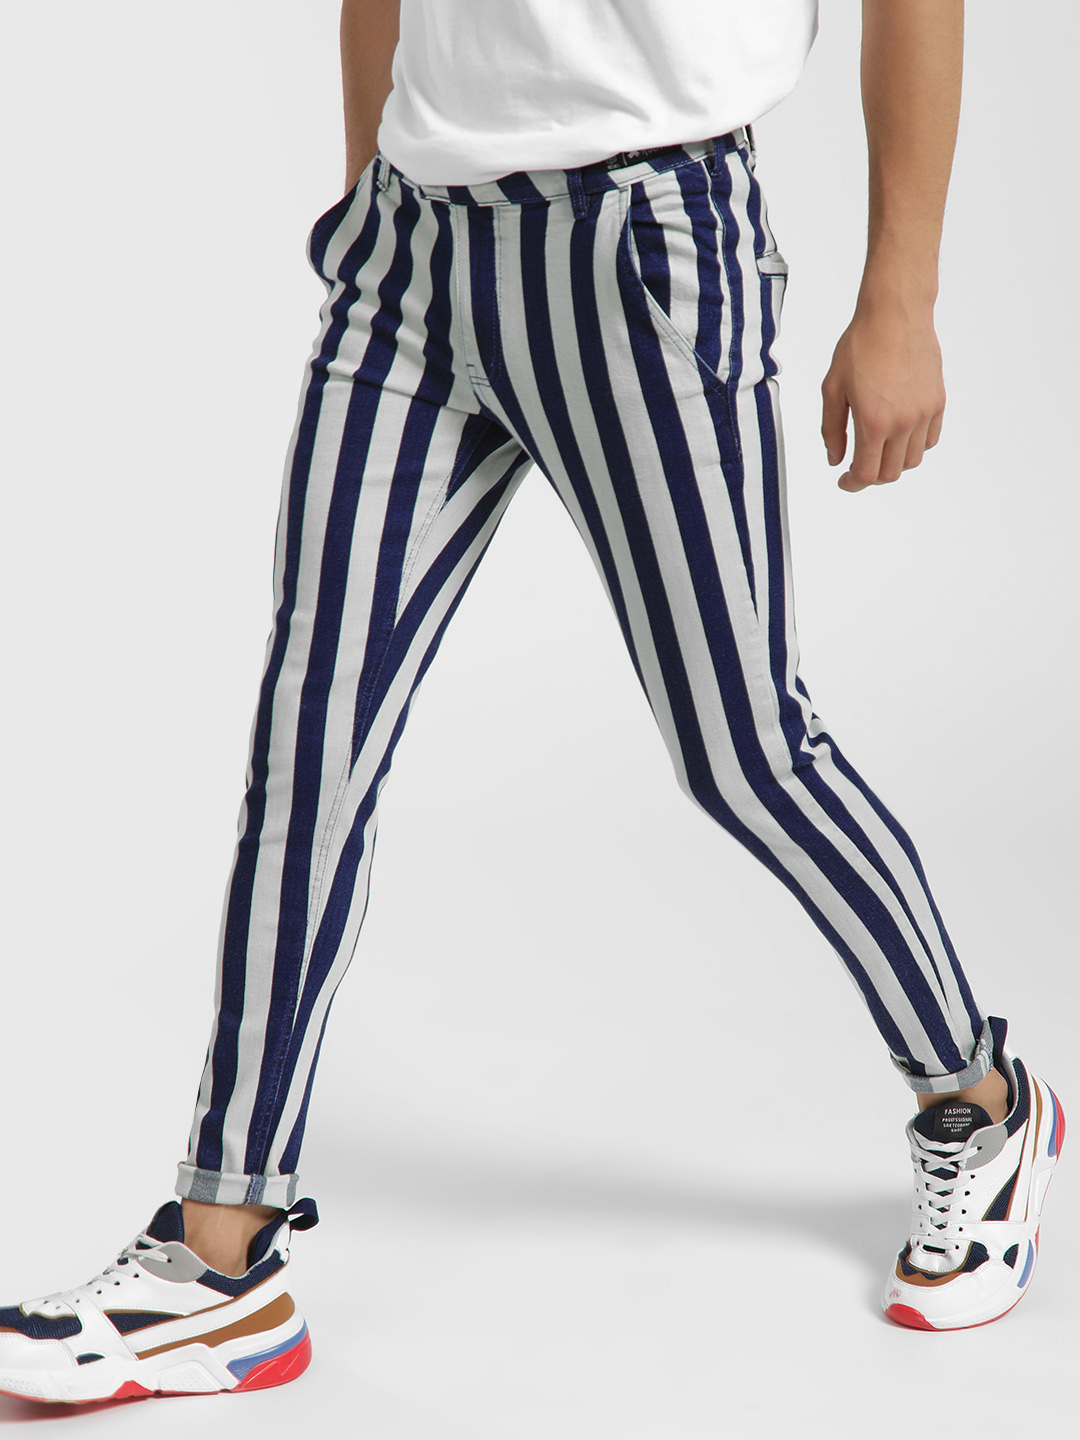 Kultprit Multi Colour Block Stripe Skinny Jeans 1